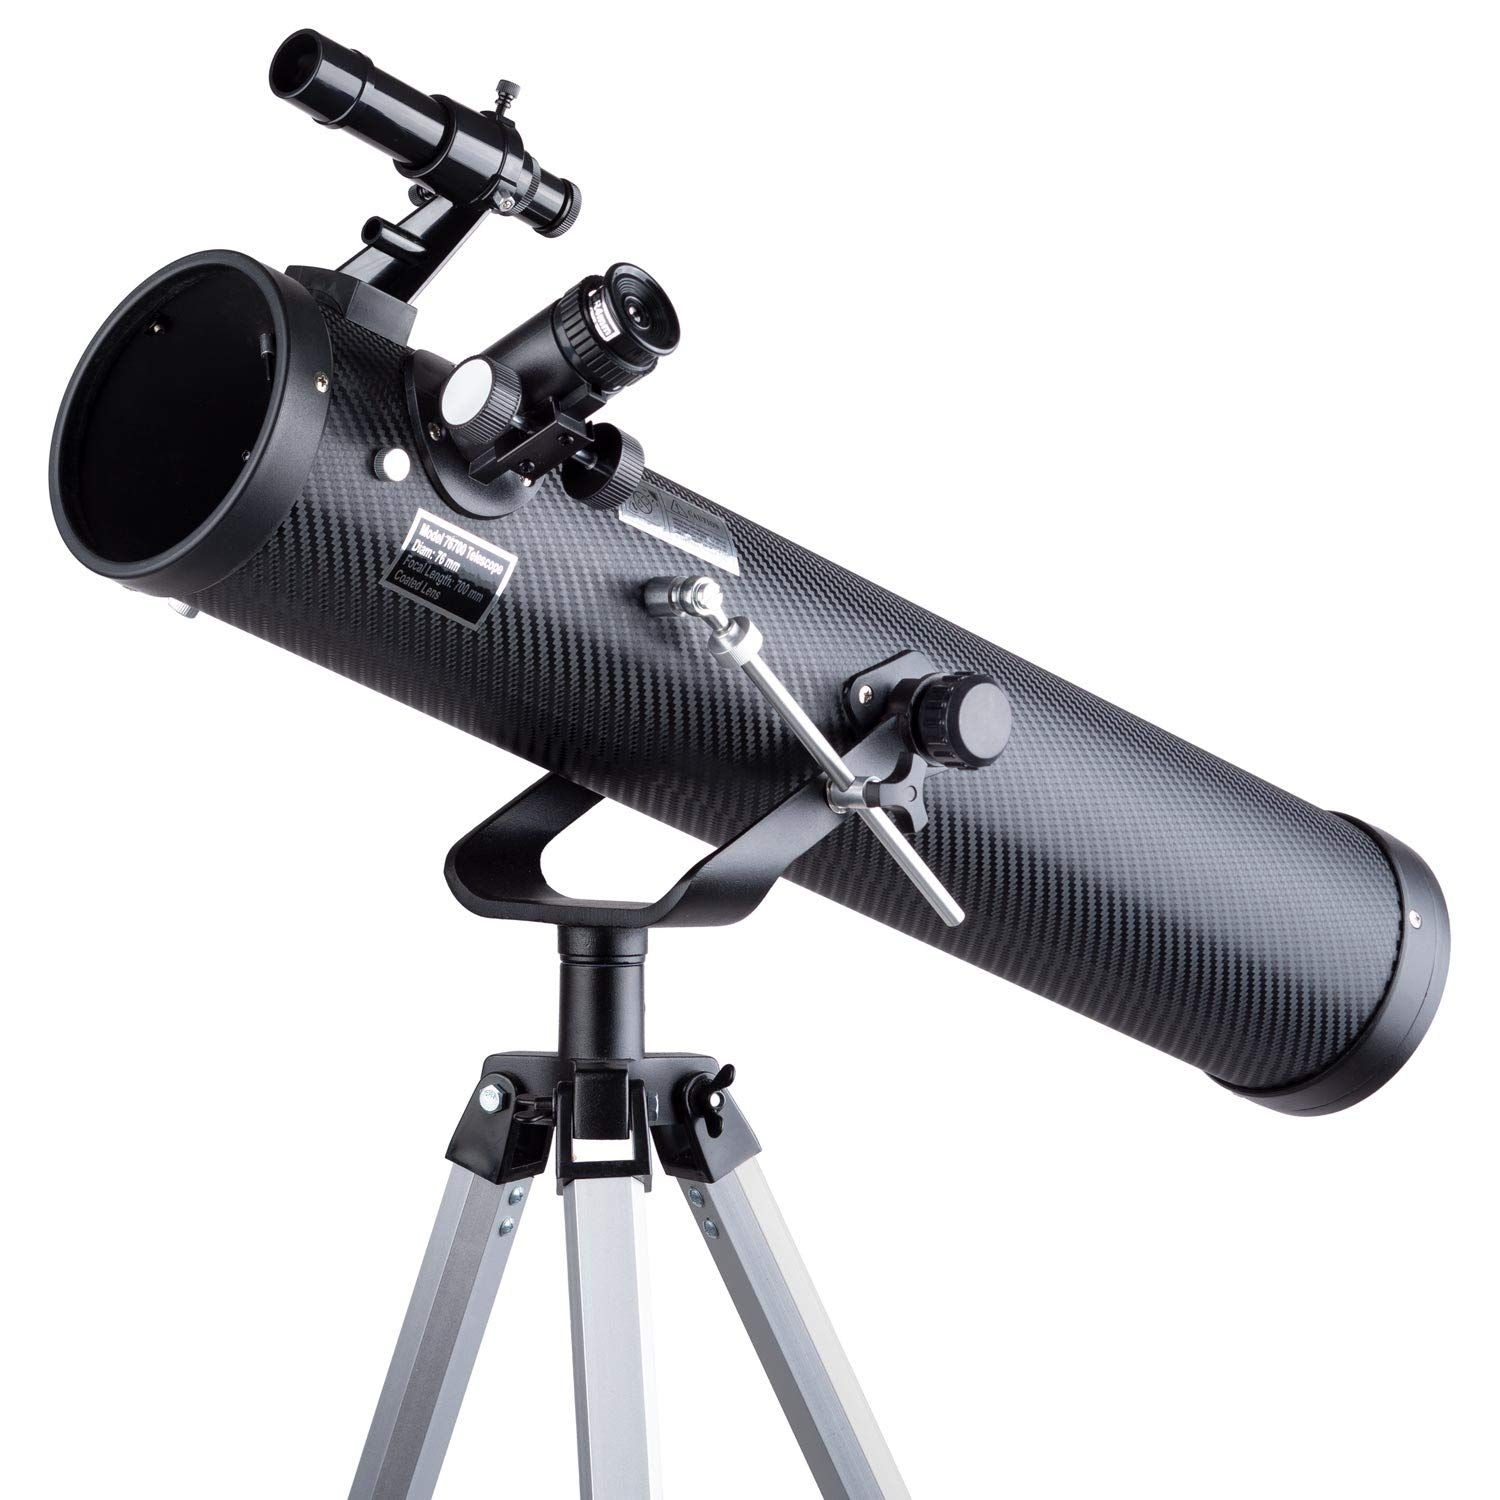 IQCrew 35X-350X 76mm Dobsonian Telescope with 3X Barlow Lens and Tripod by IQCrew